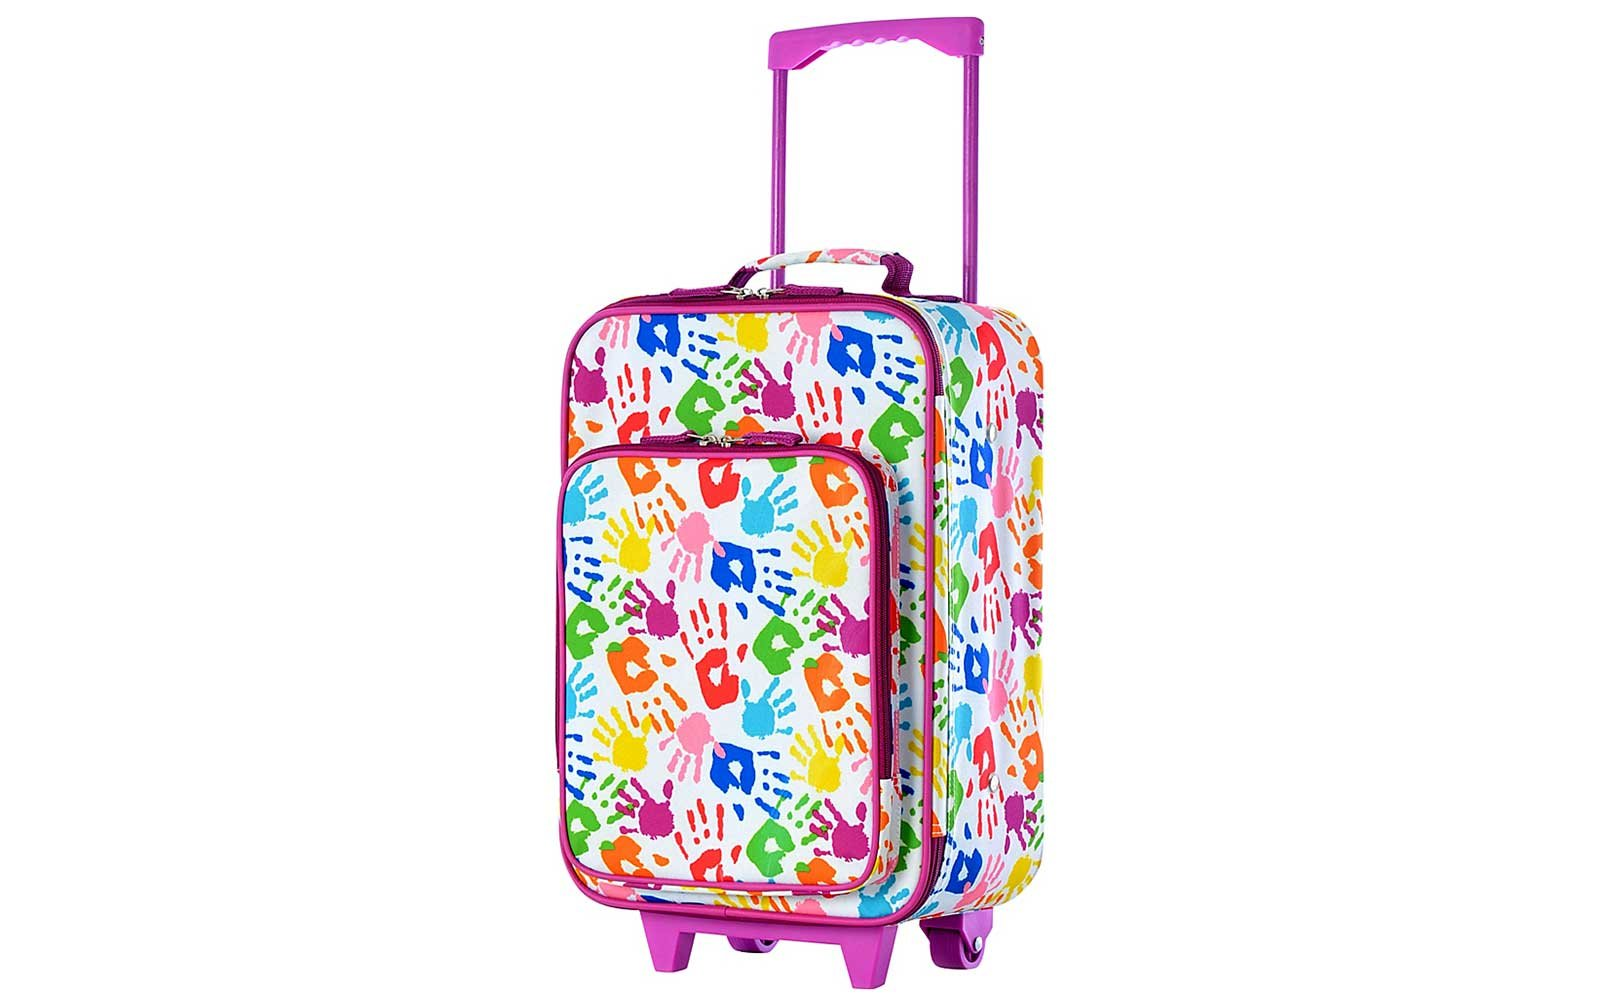 Colorful Luggage for Kids